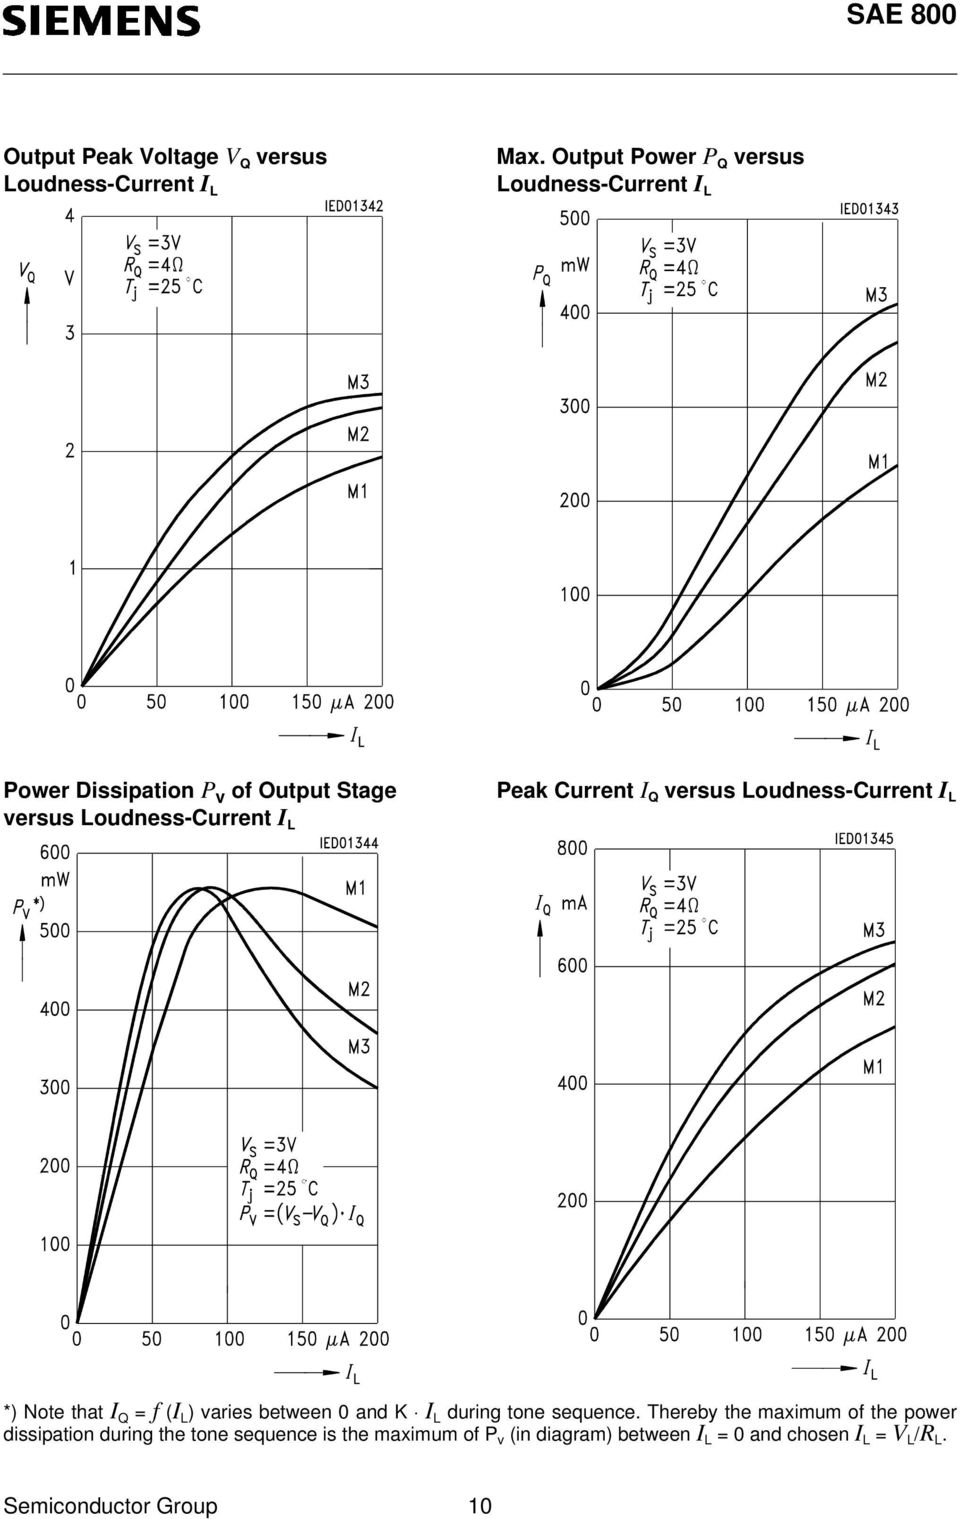 Peak Current I Q versus Loudness-Current I L *) Note that I Q = f (I L ) varies between 0 and K I L during tone